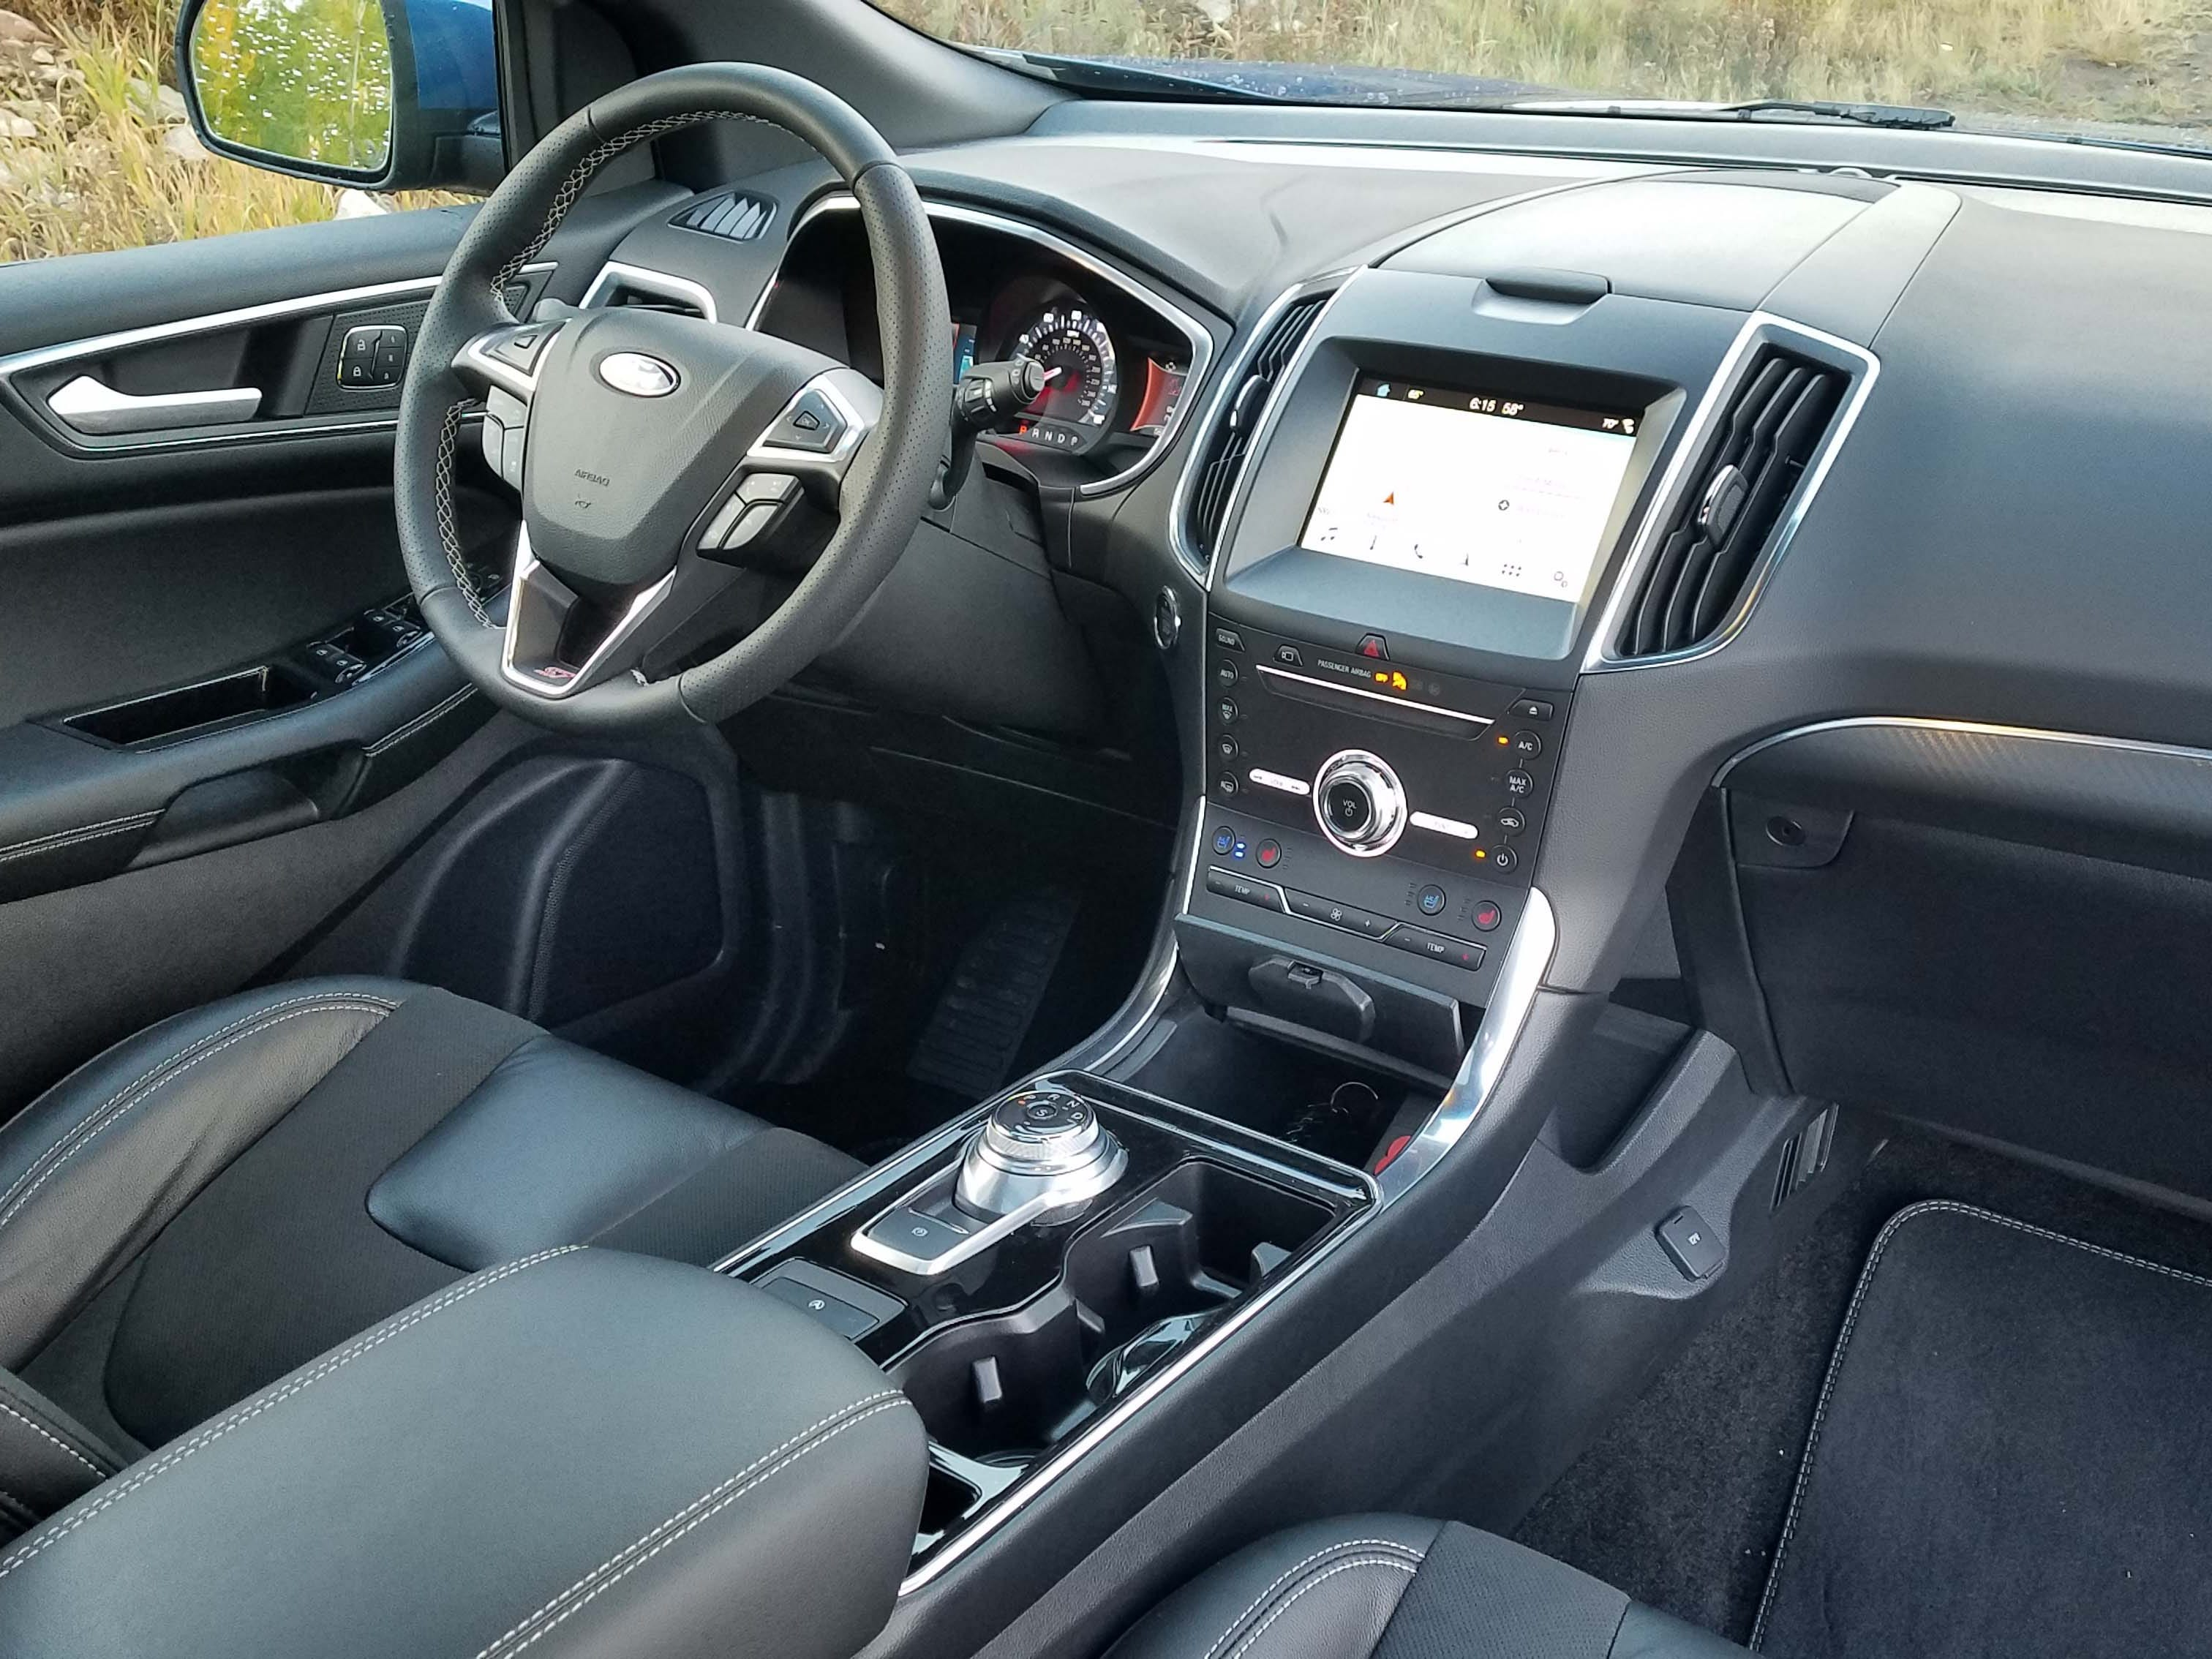 The interior of the 2019 Ford Edge ST is functional and comfortable with good cubby space (including atop the dash), connectivity, and posh seats. You can have any interior color you want as long as it's black.